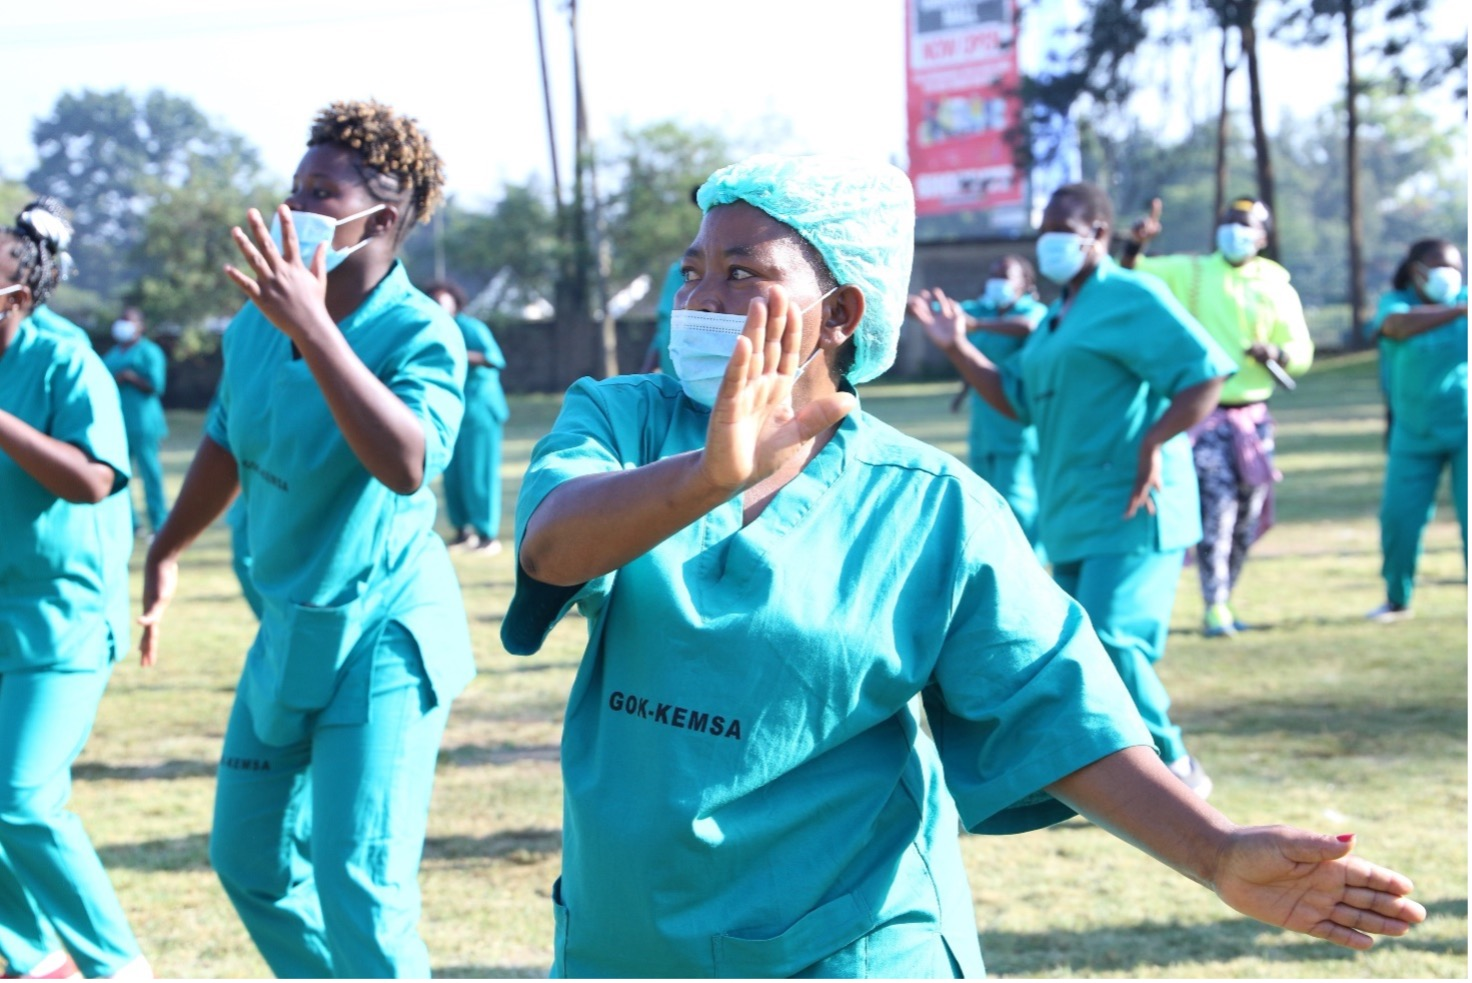 Kenya Zumba for healthcare workers